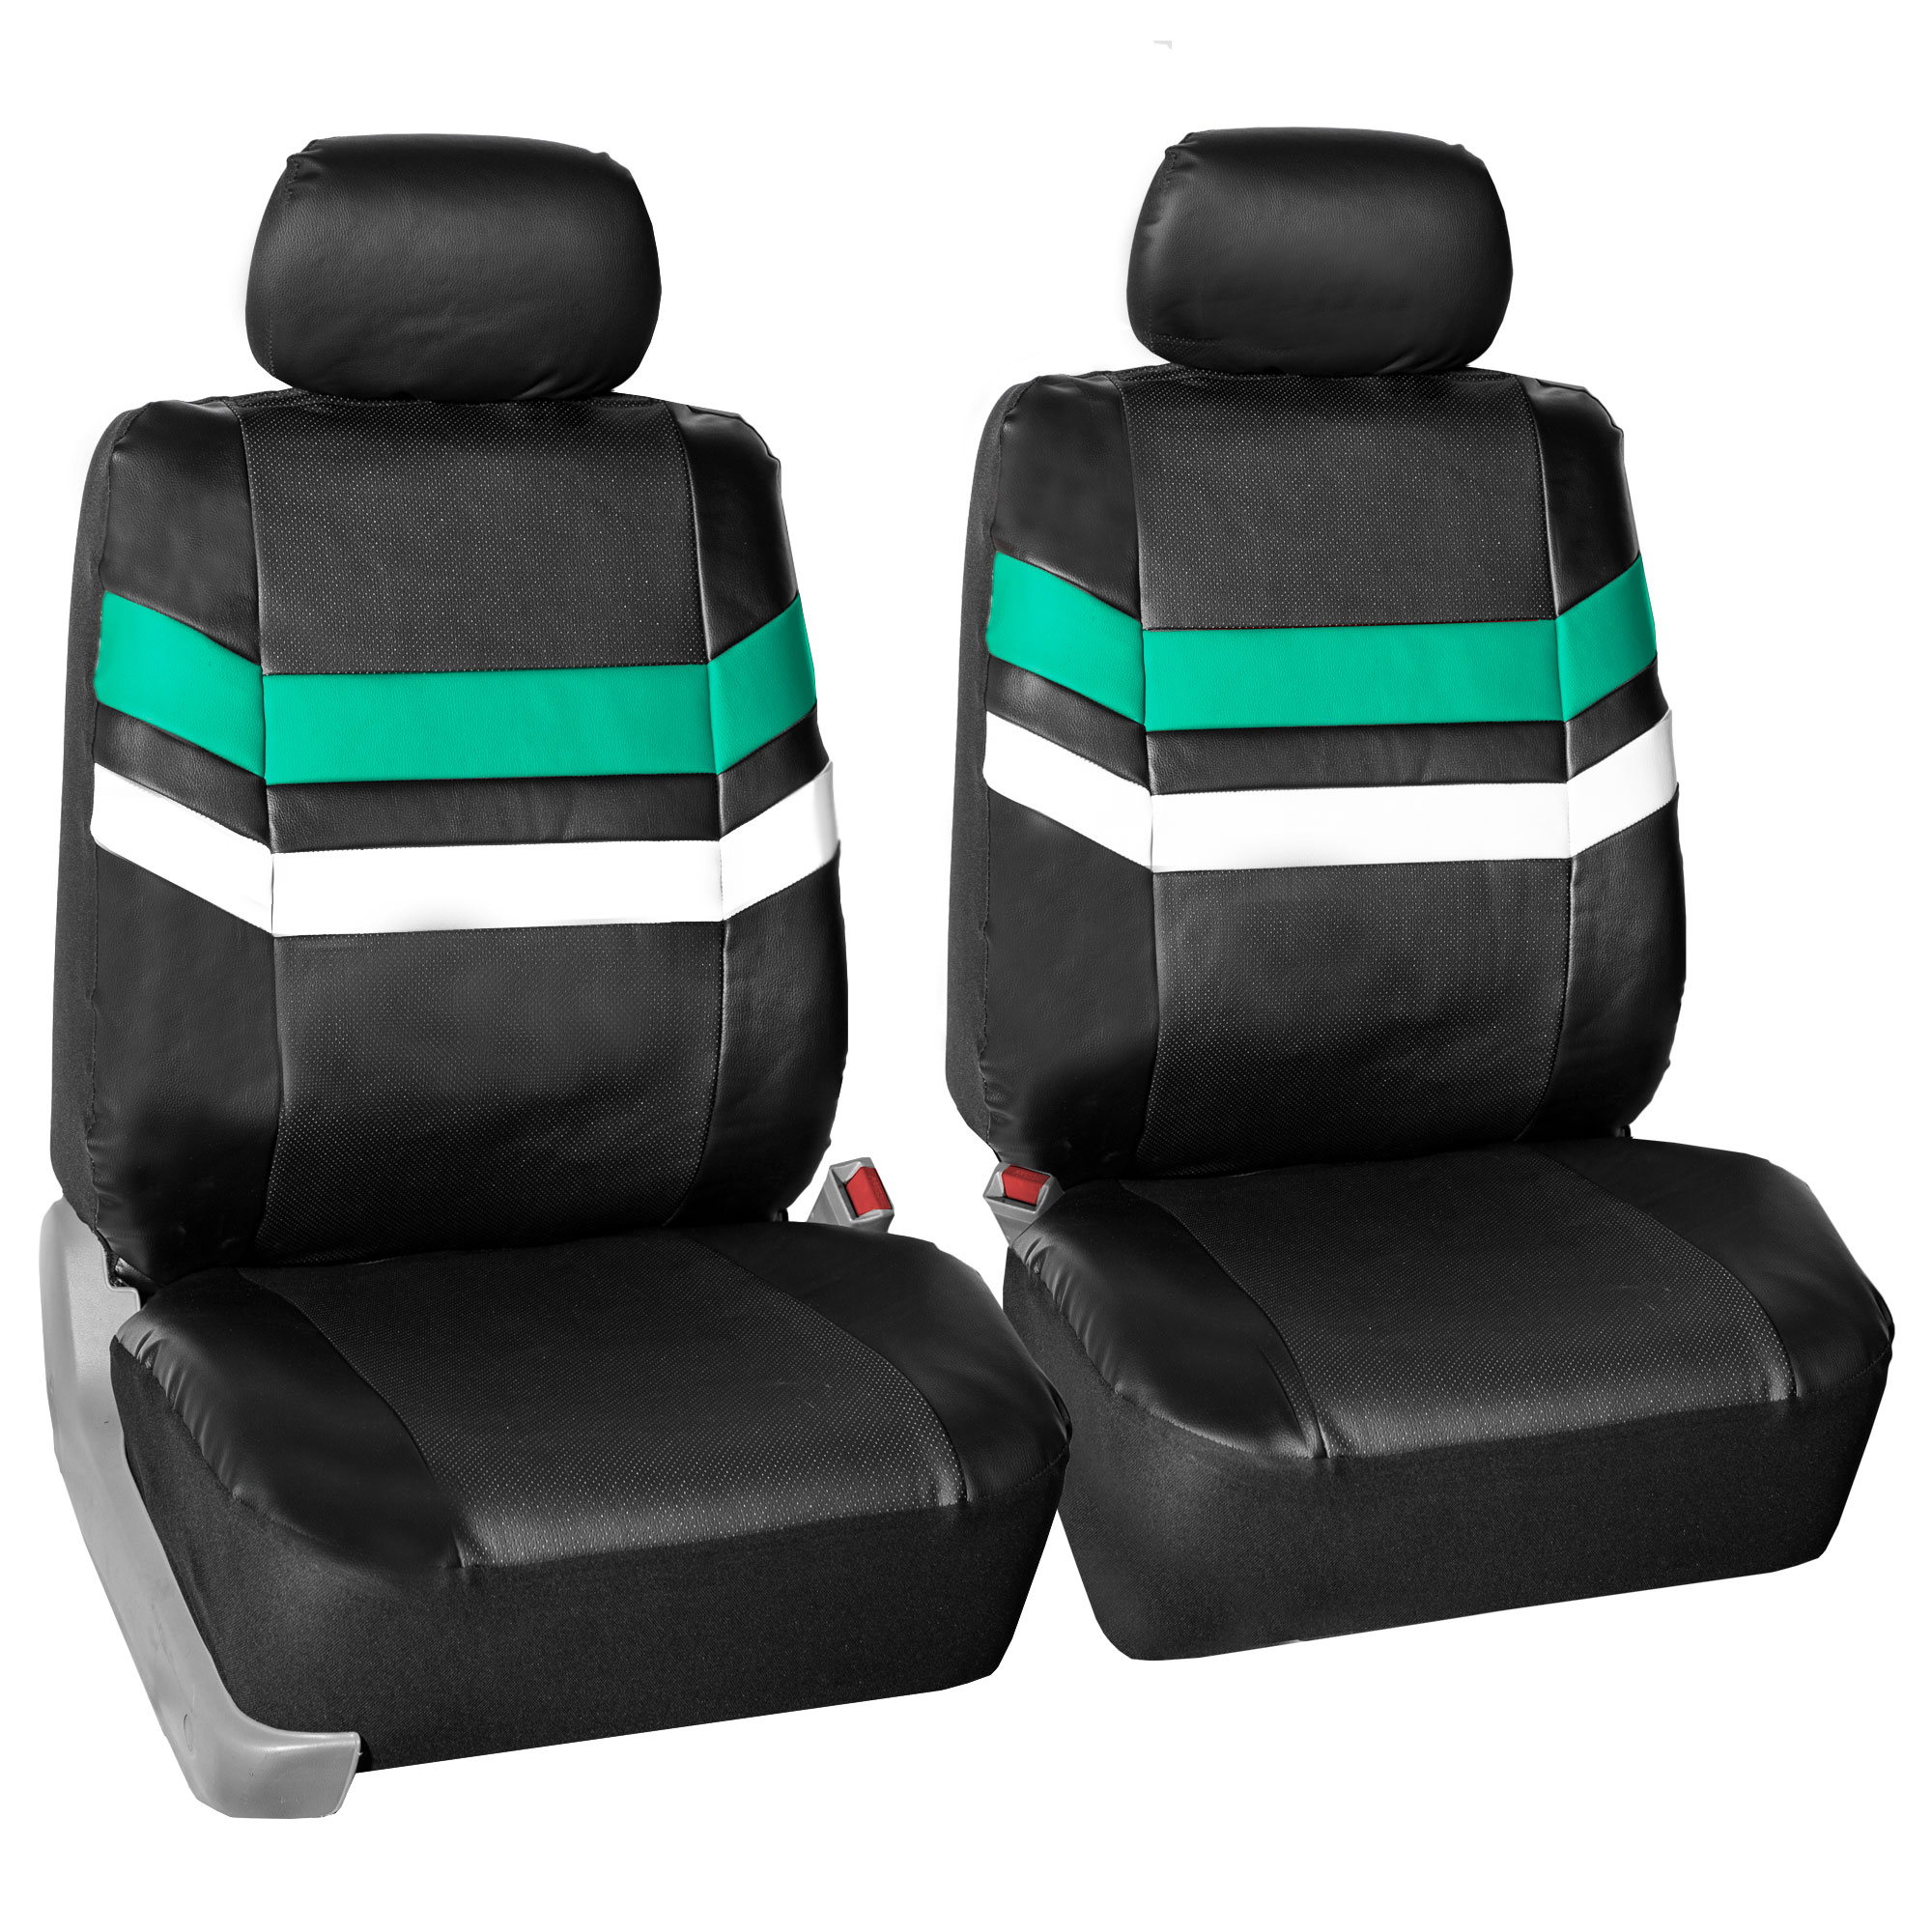 Auto Seat Covers PU Leather For Car Van SUV Truck Top